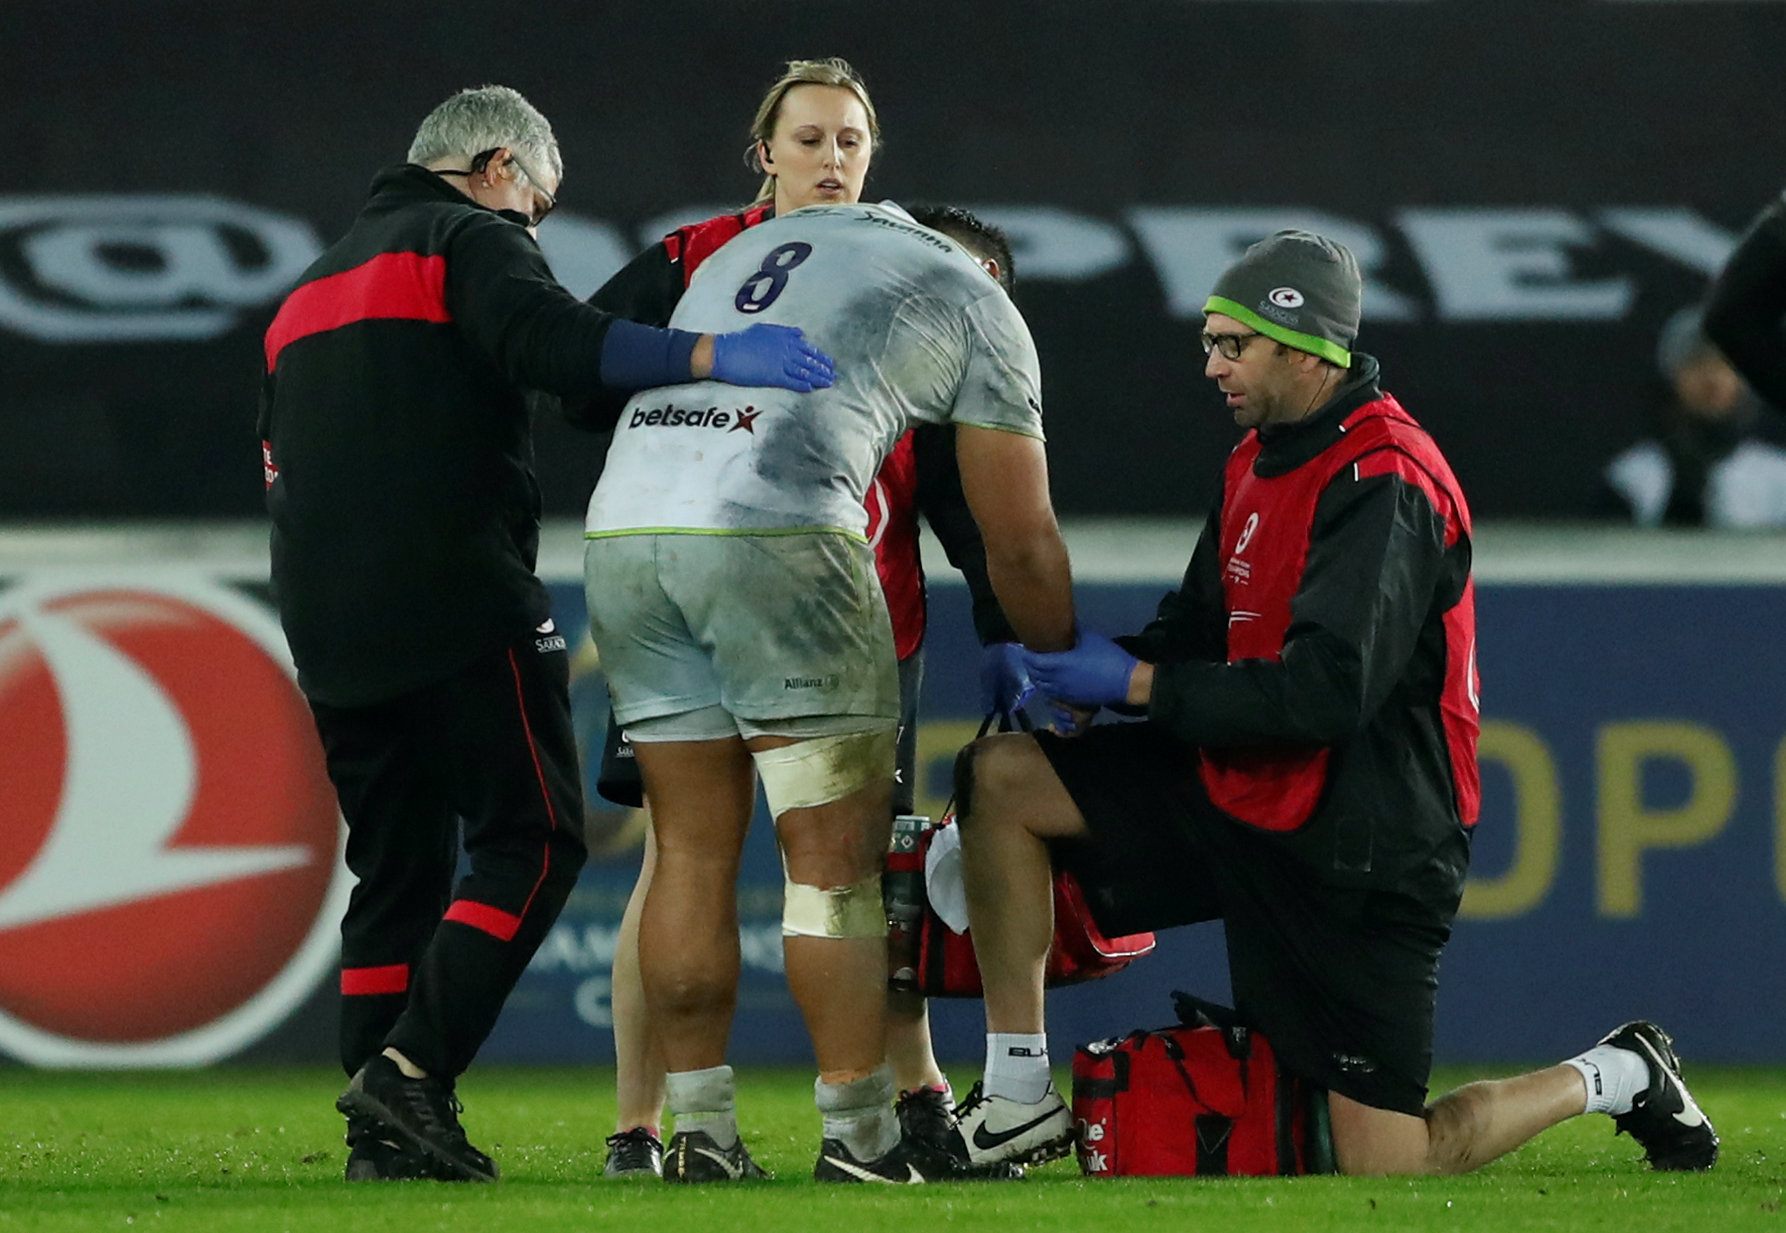 Billy Vunipola's injury misfortune has struck again. Picture: Action Images